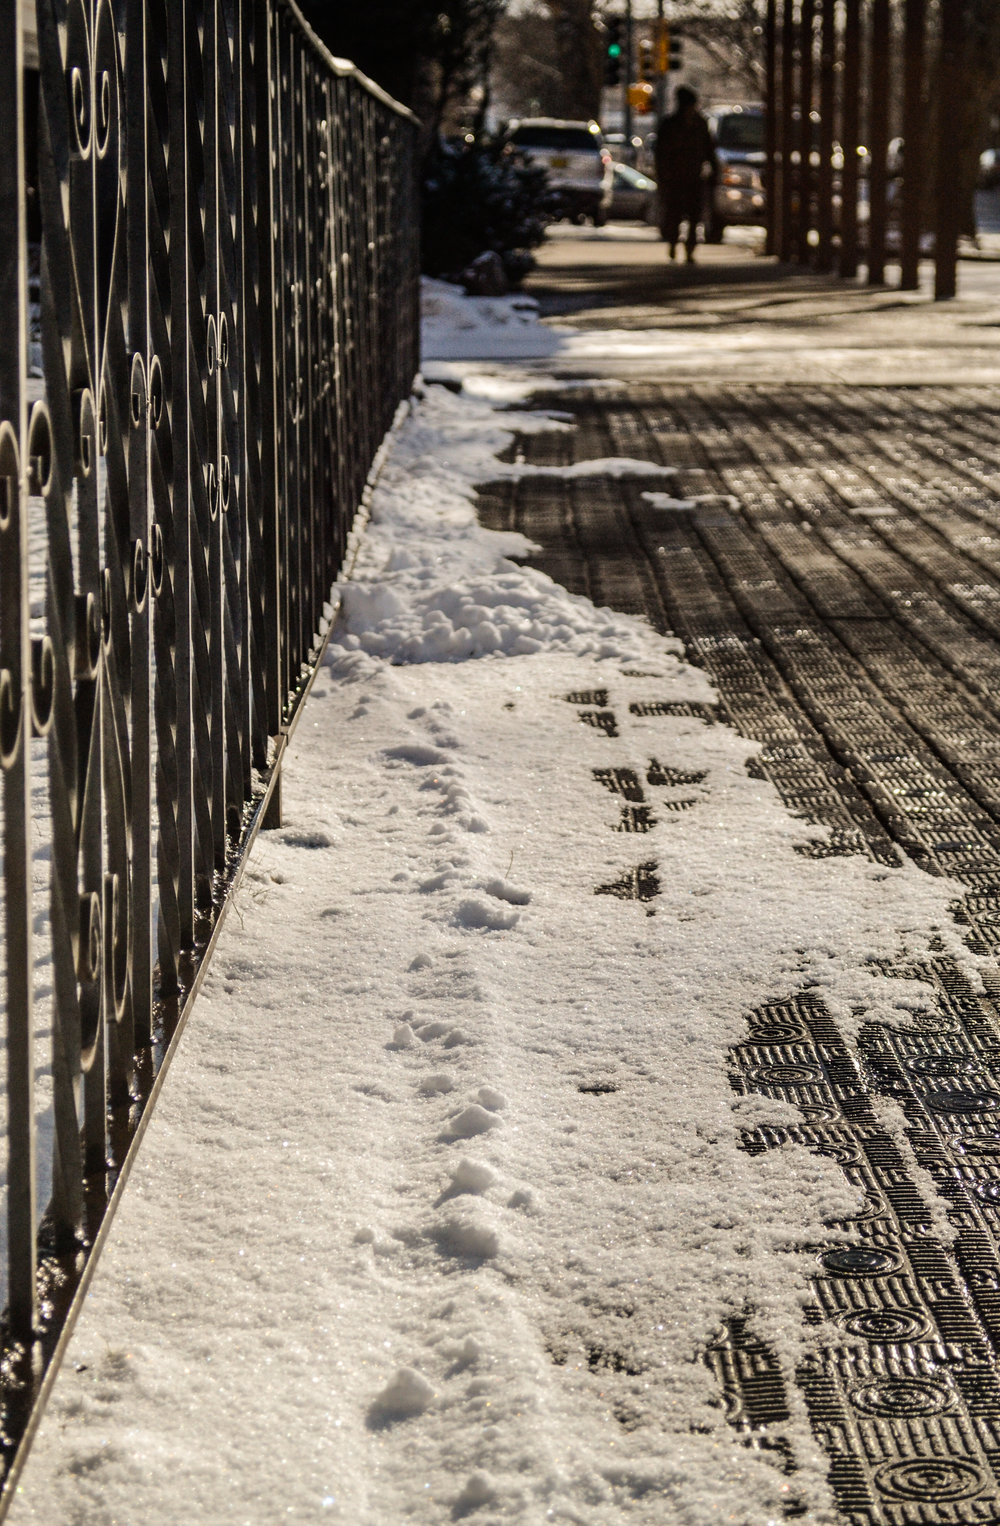 Santa Fe sidewalk (photo: Andy Bruner)